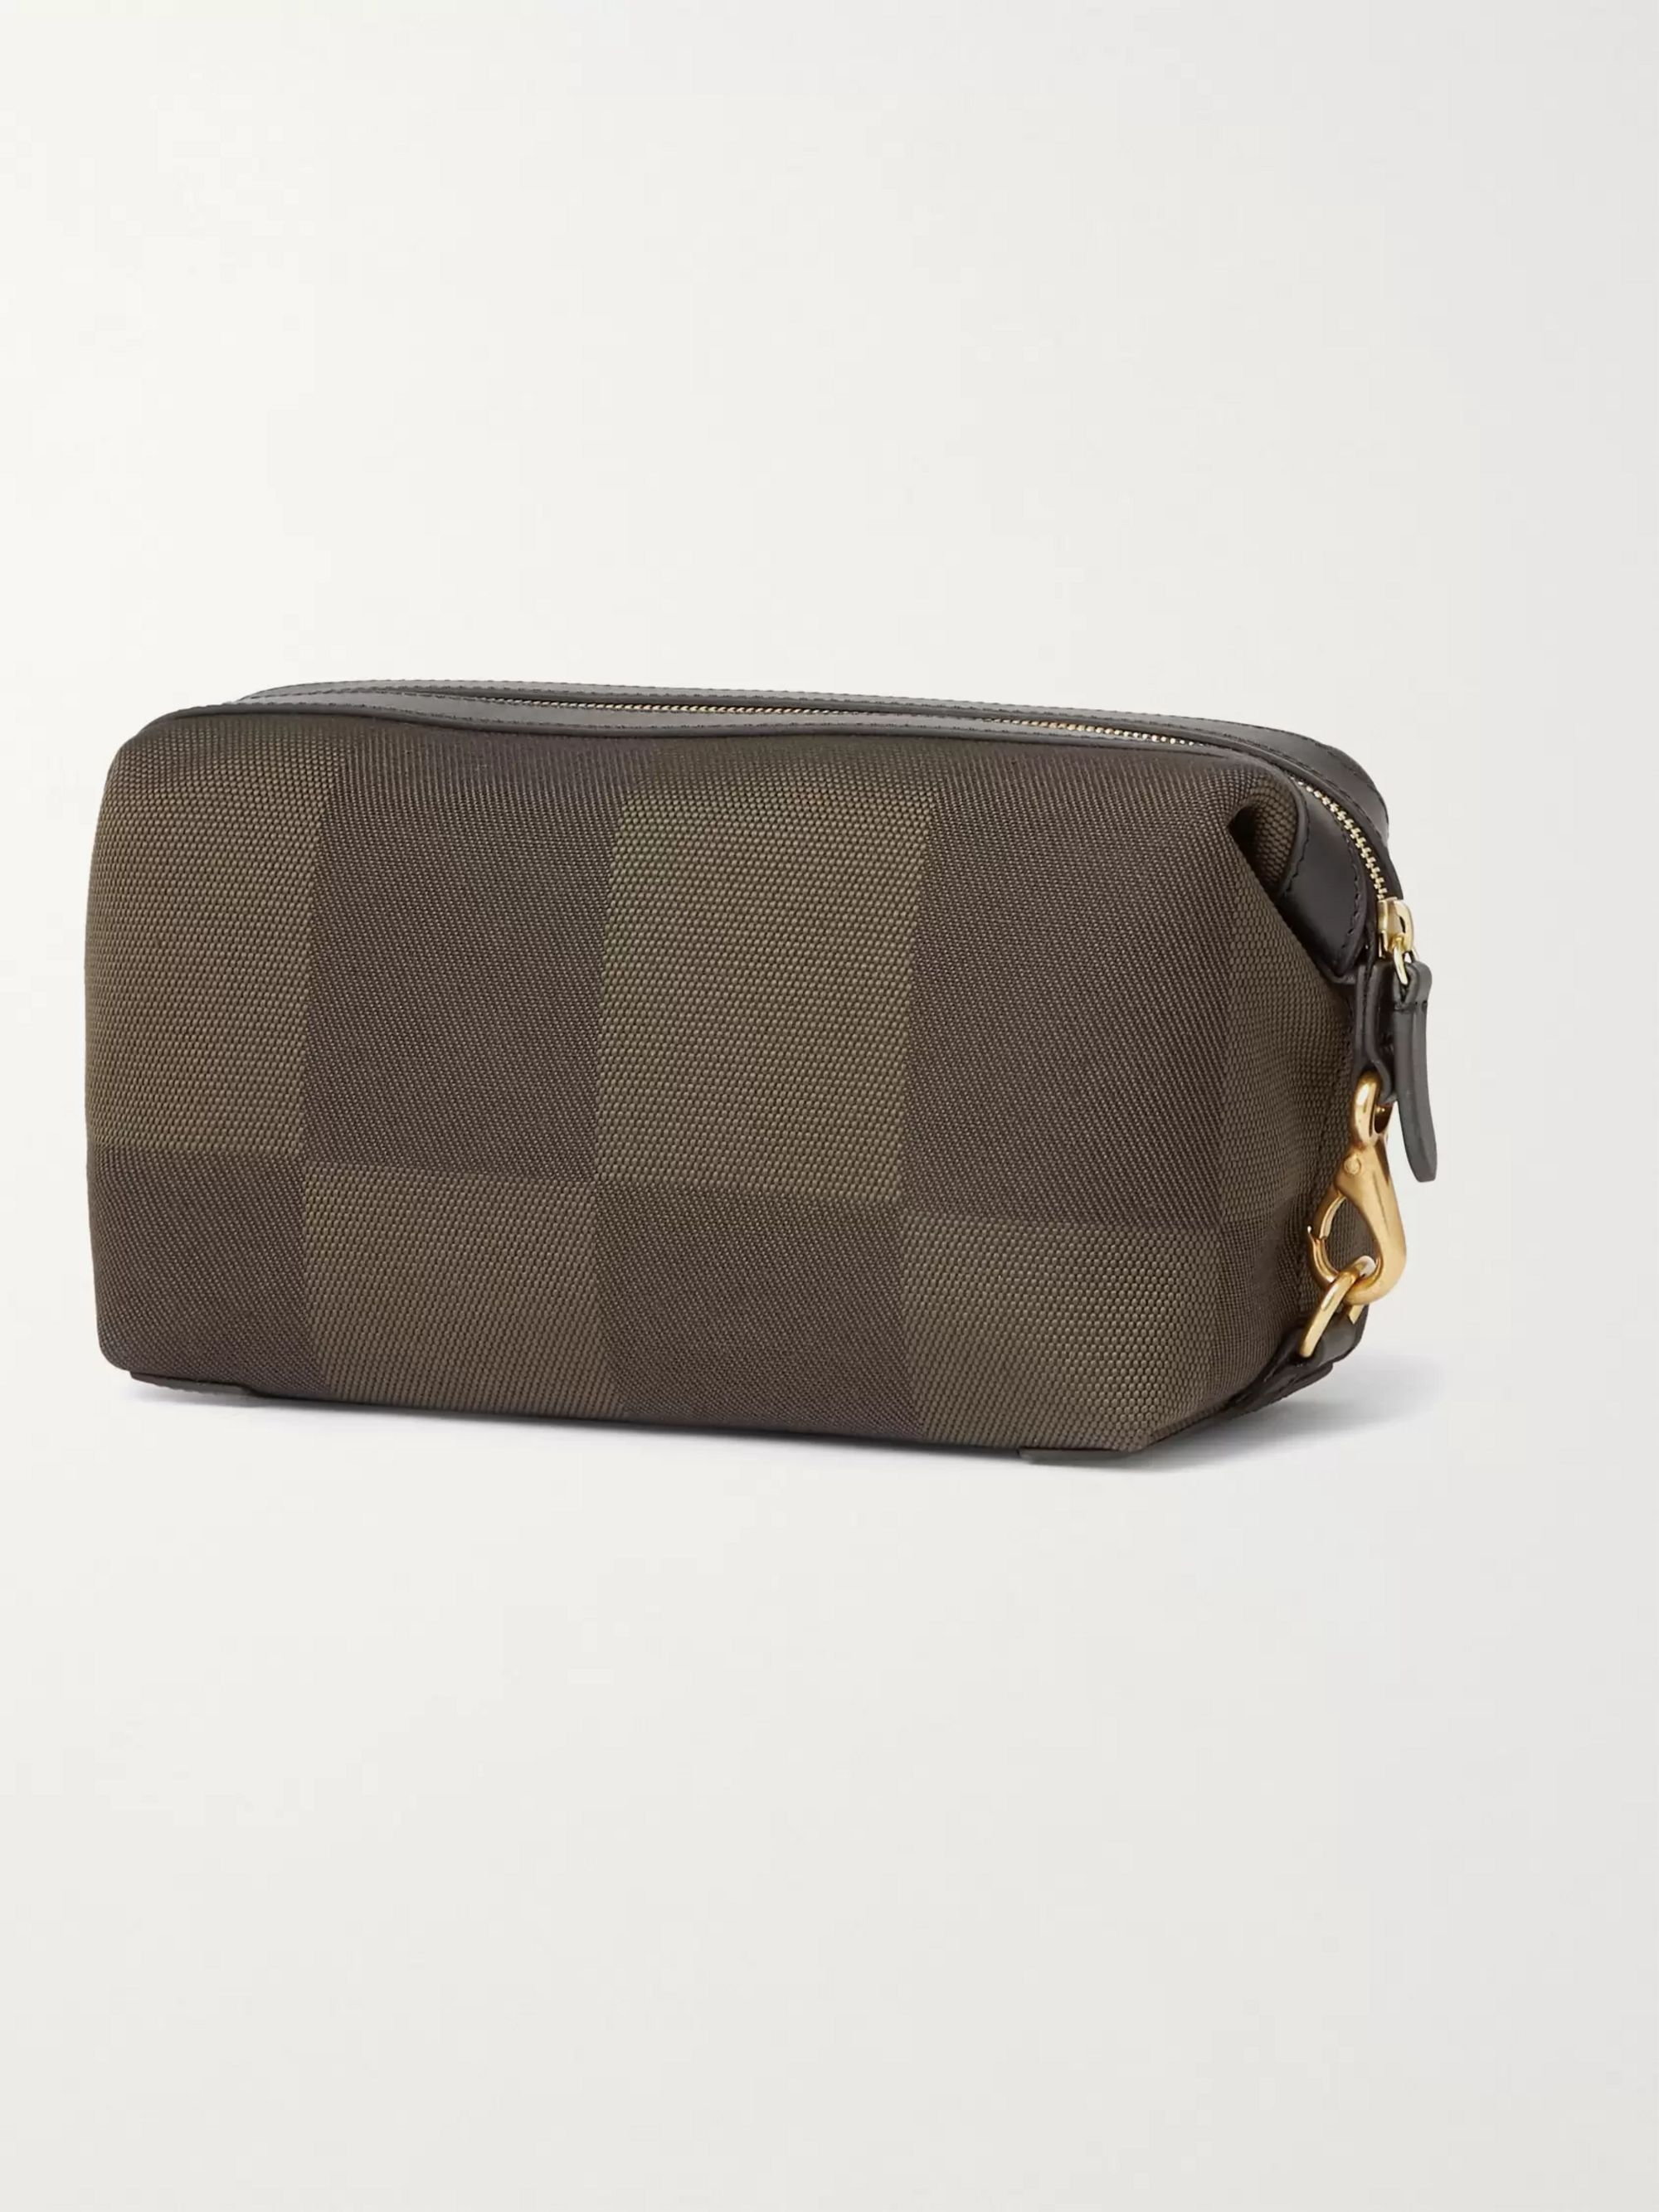 MISMO Leather-Trimmed Canvas Wash Bag